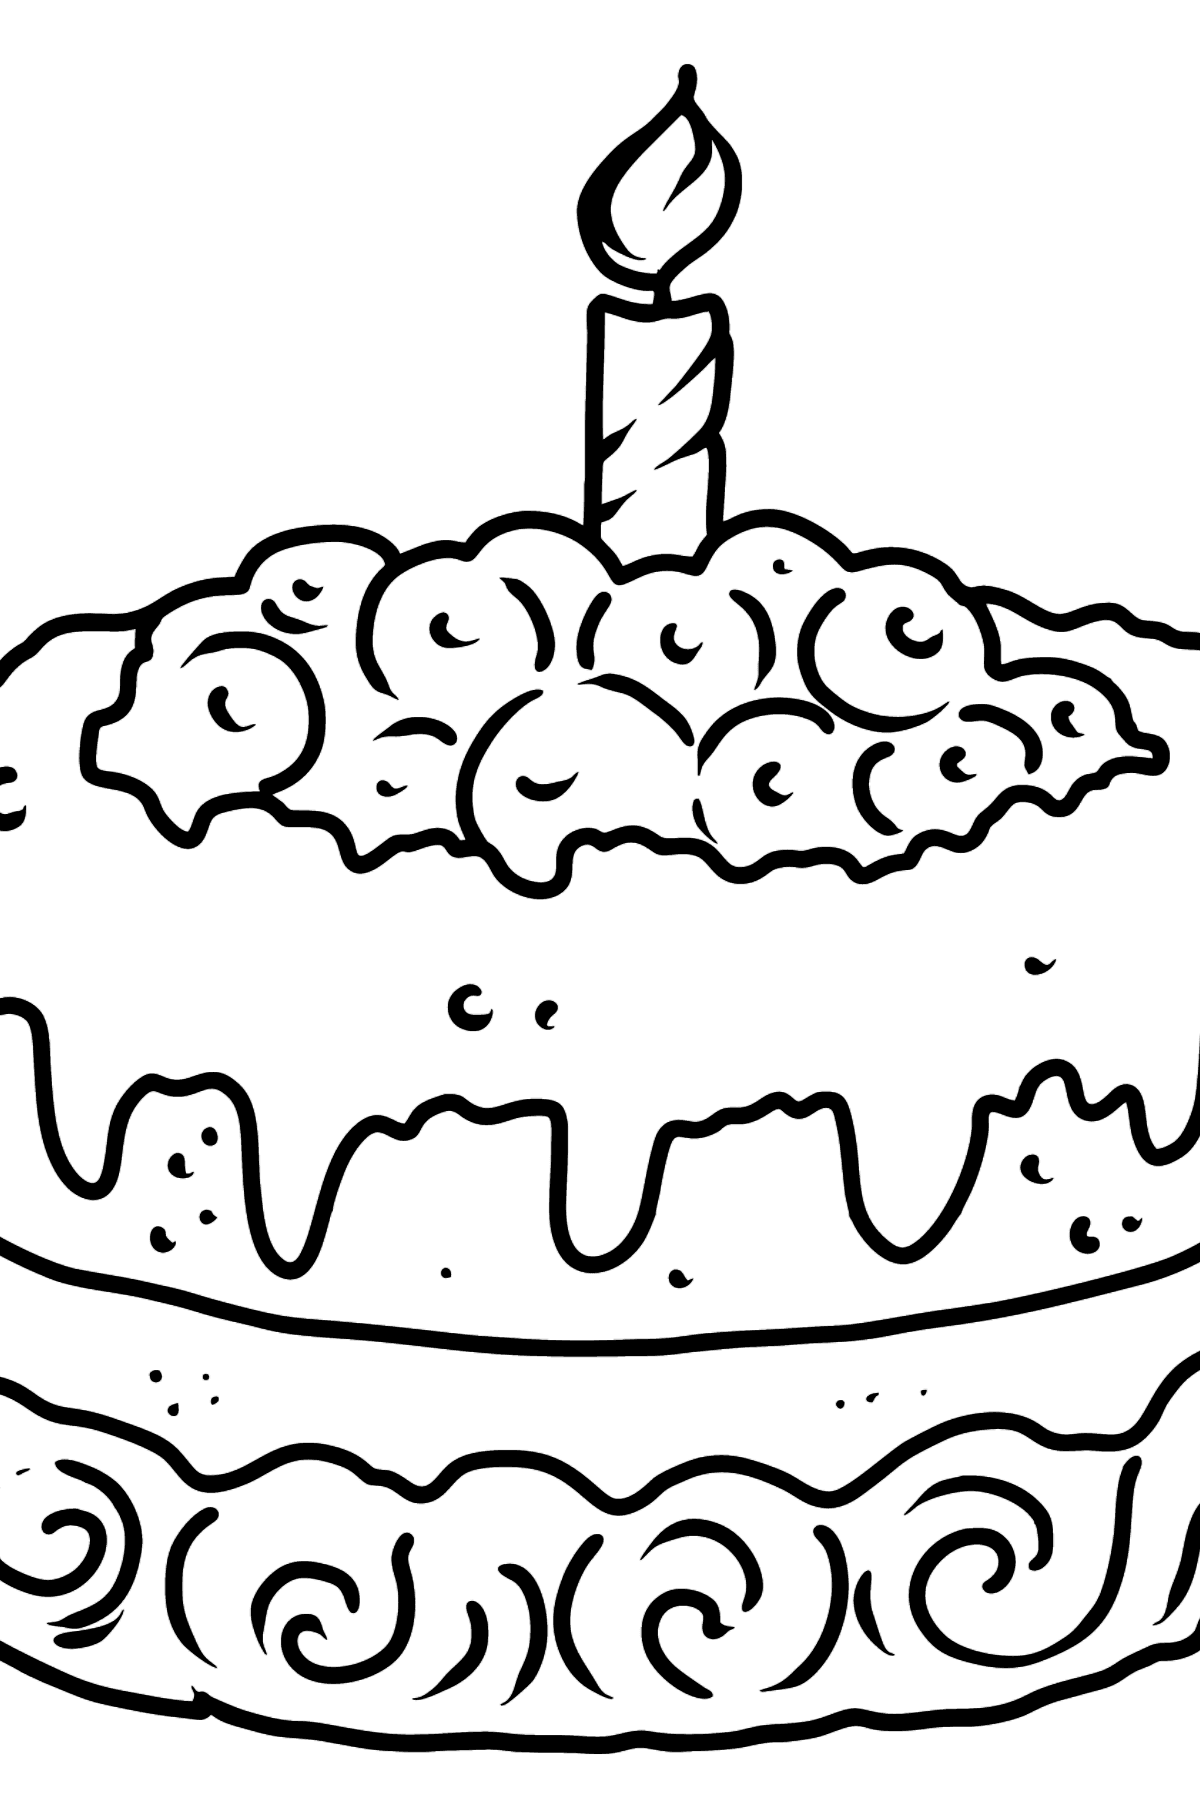 Blueberry Cake coloring page - Coloring Pages for Kids